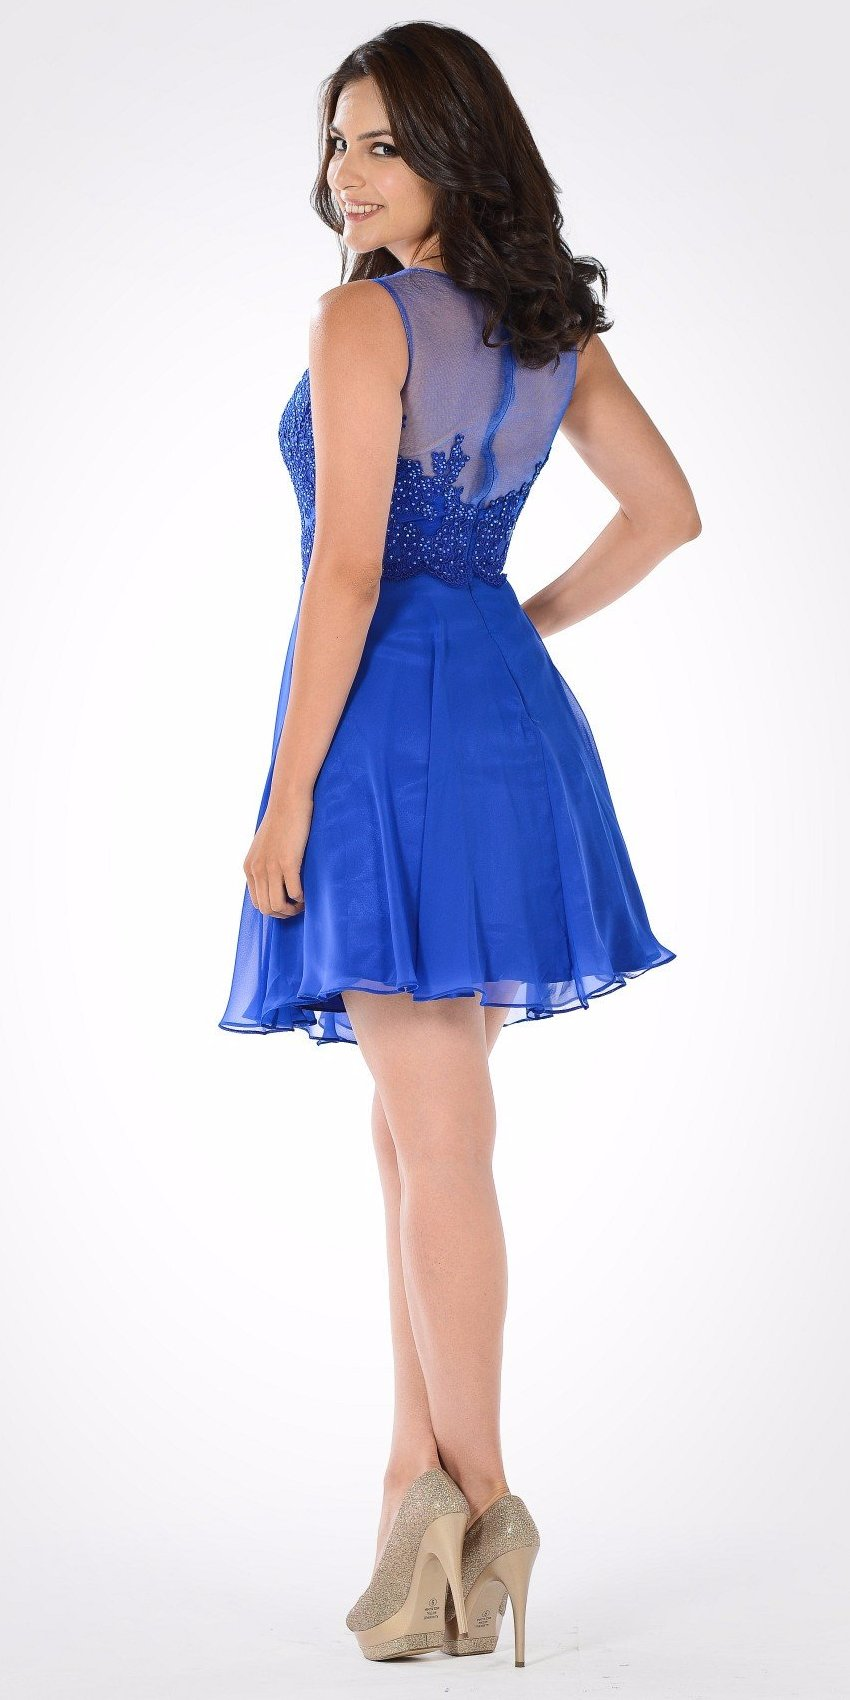 Bateau Neck Embellished Bodice Chiffon Skirt Short Party Dress Cobalt